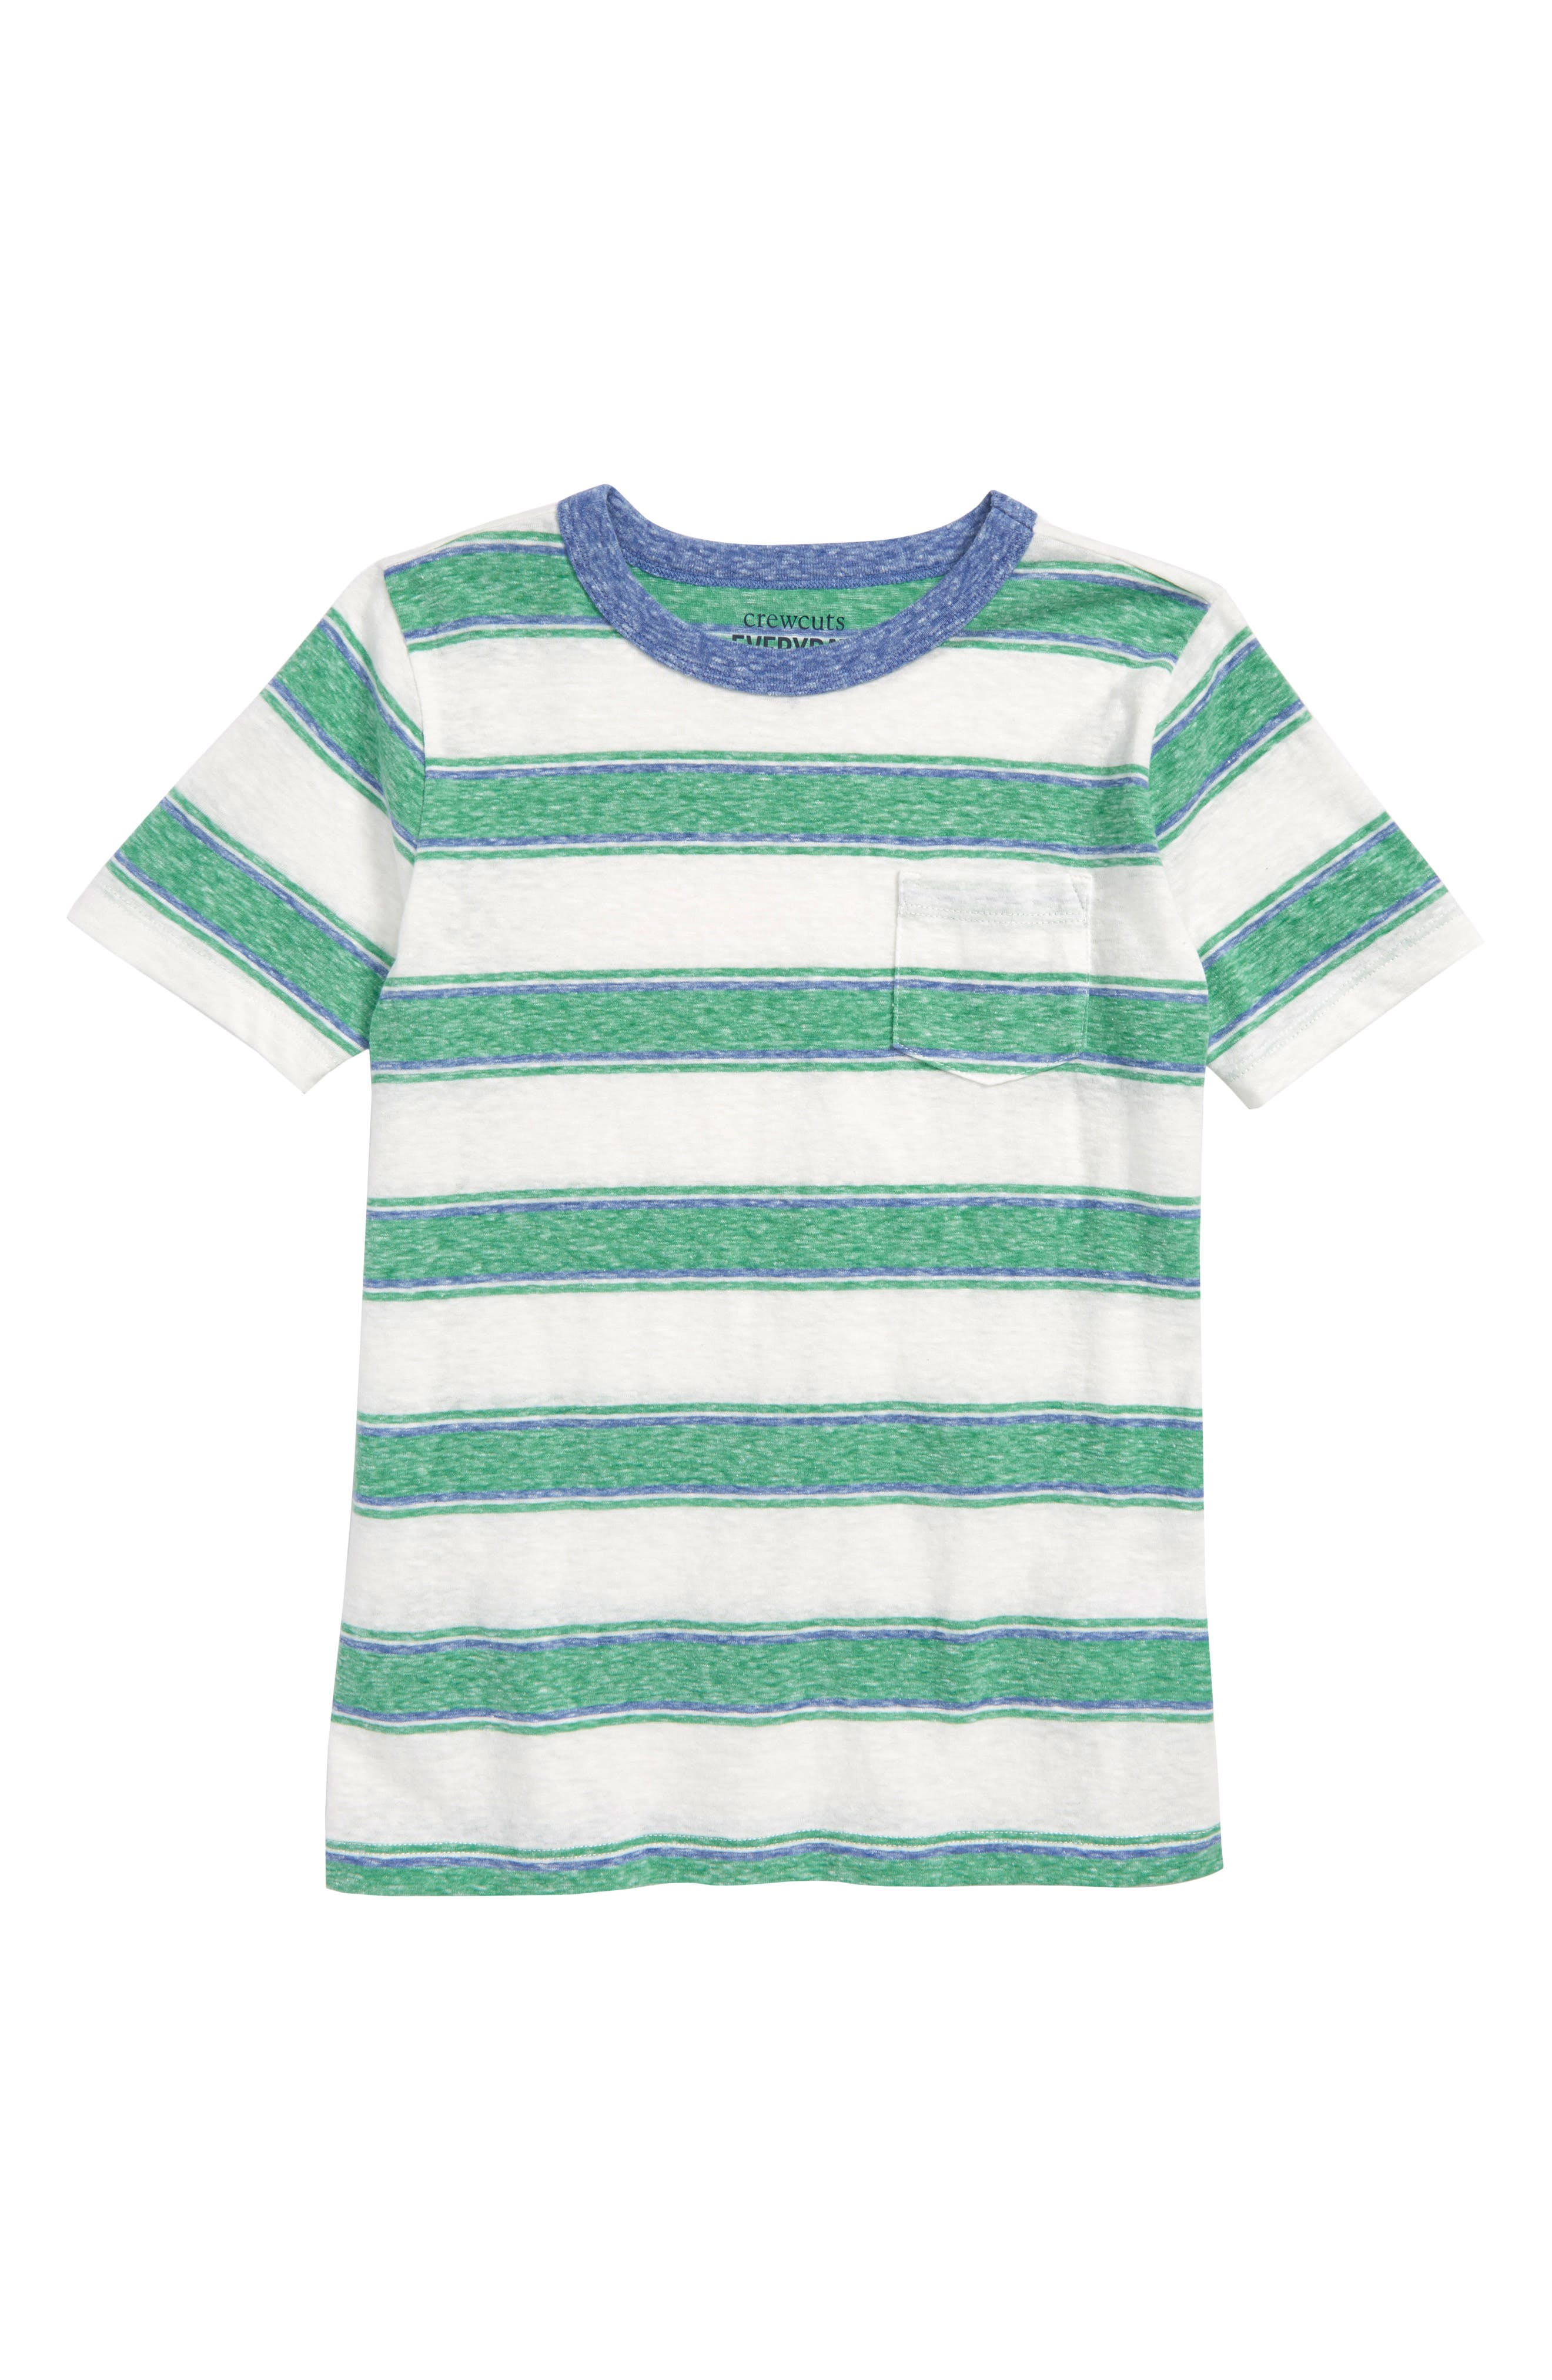 Abbot Surfside Stripe T-Shirt,                             Main thumbnail 1, color,                             CLOVER IVORY MULTI